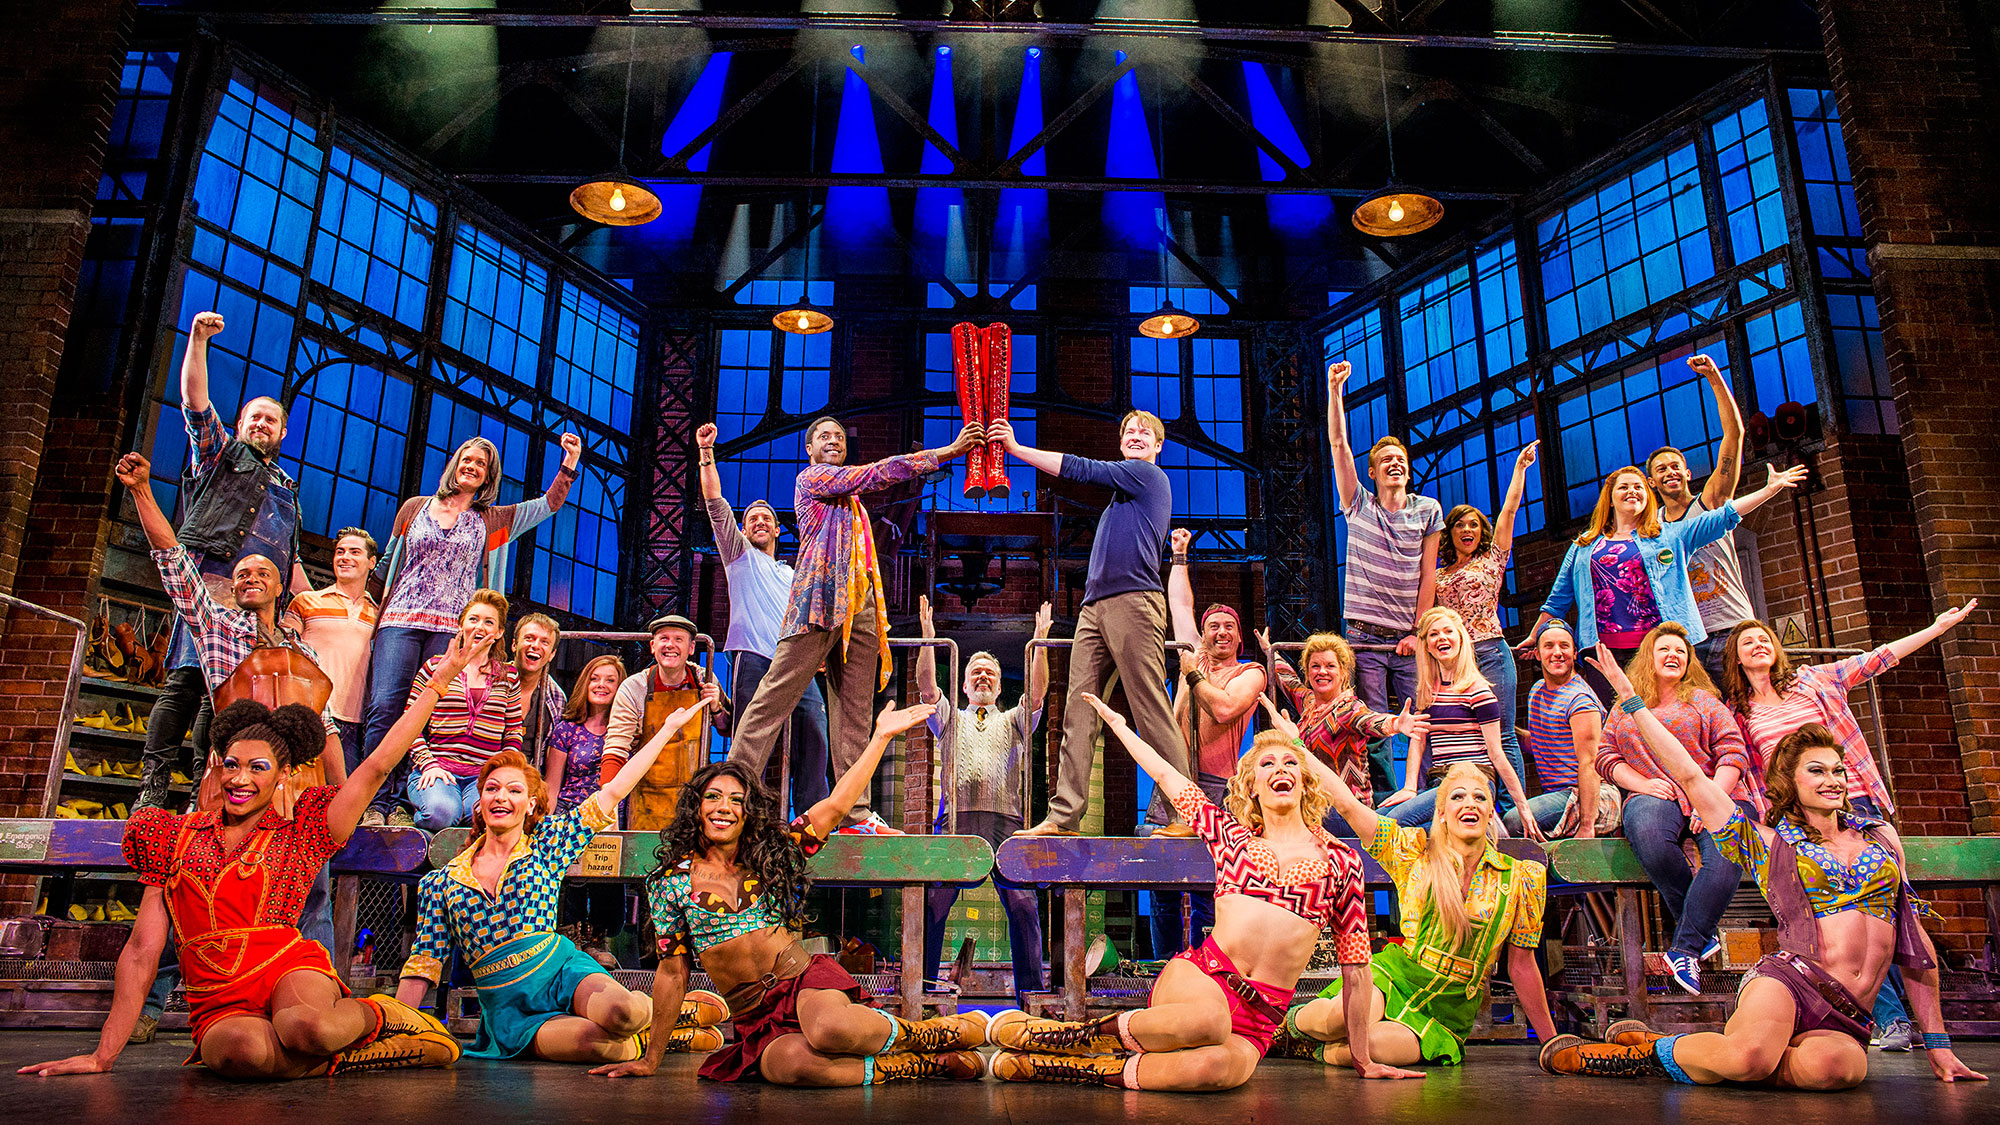 Norwegian Encore to feature 'Kinky Boots' production